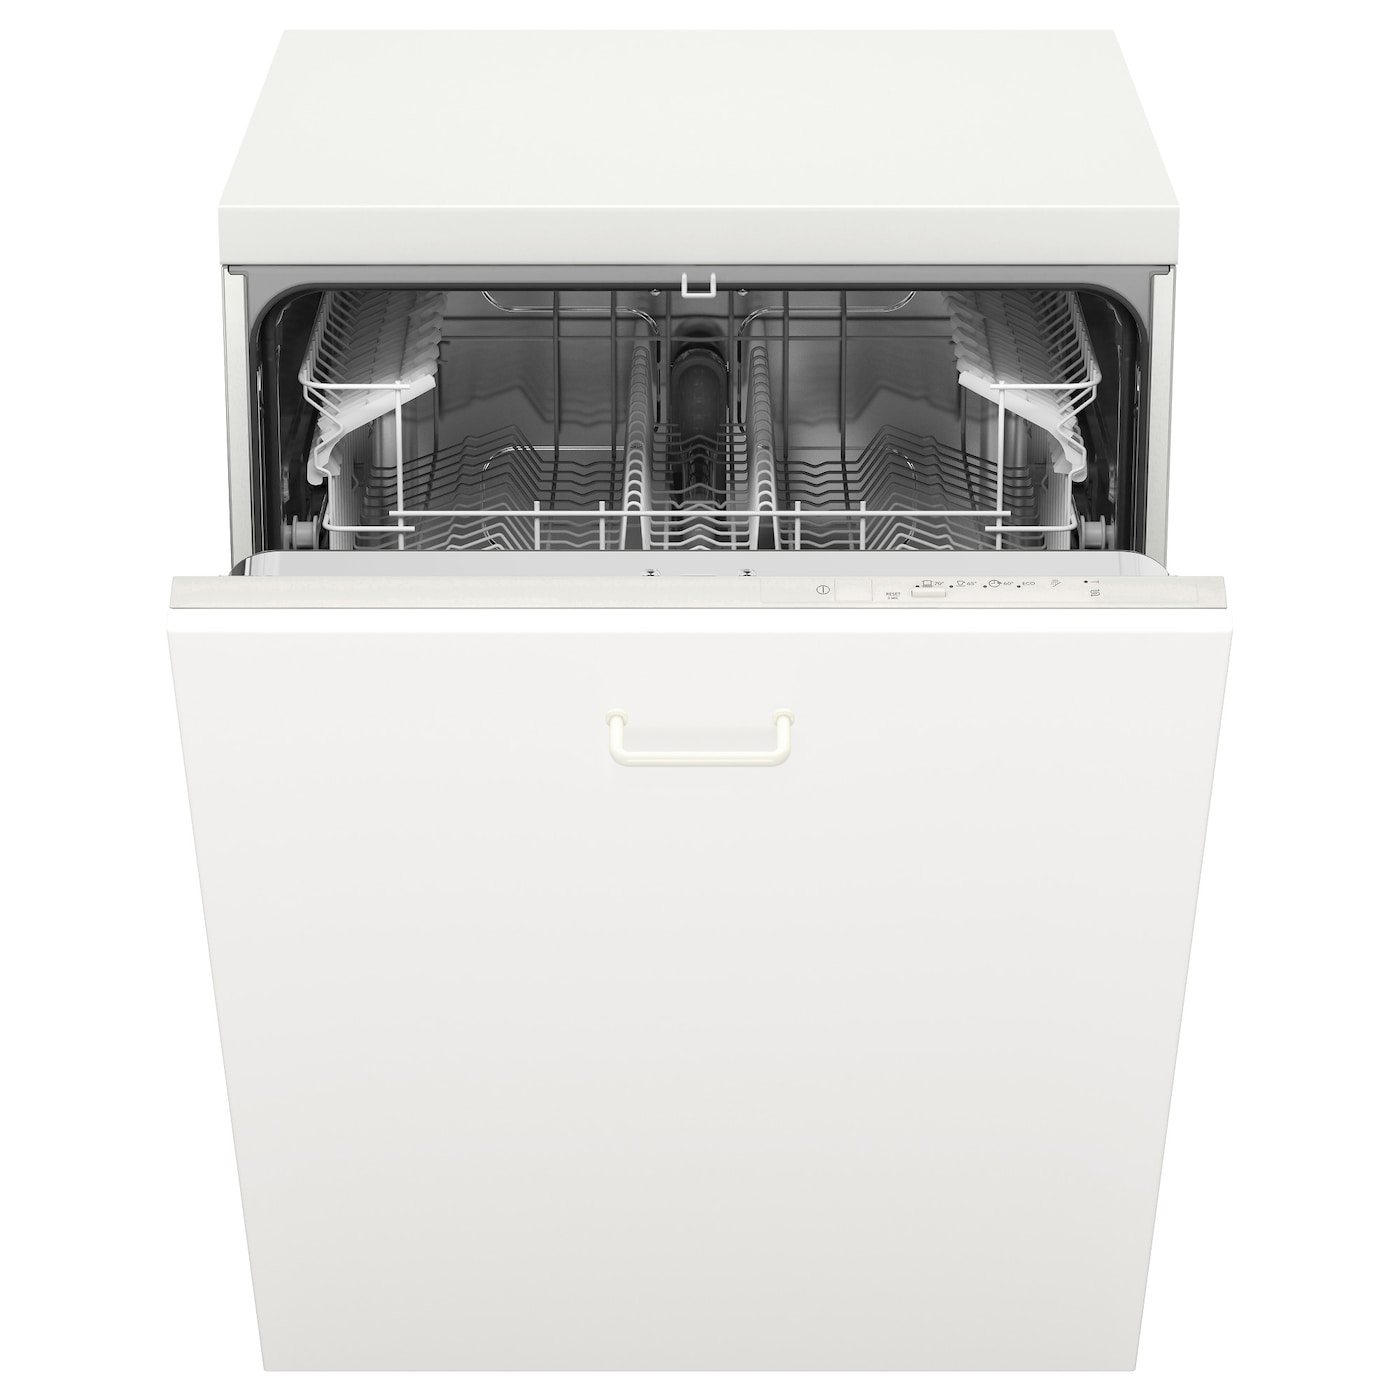 Mini Dishwashers Dishwashers Integrated Dishwashers Ikea